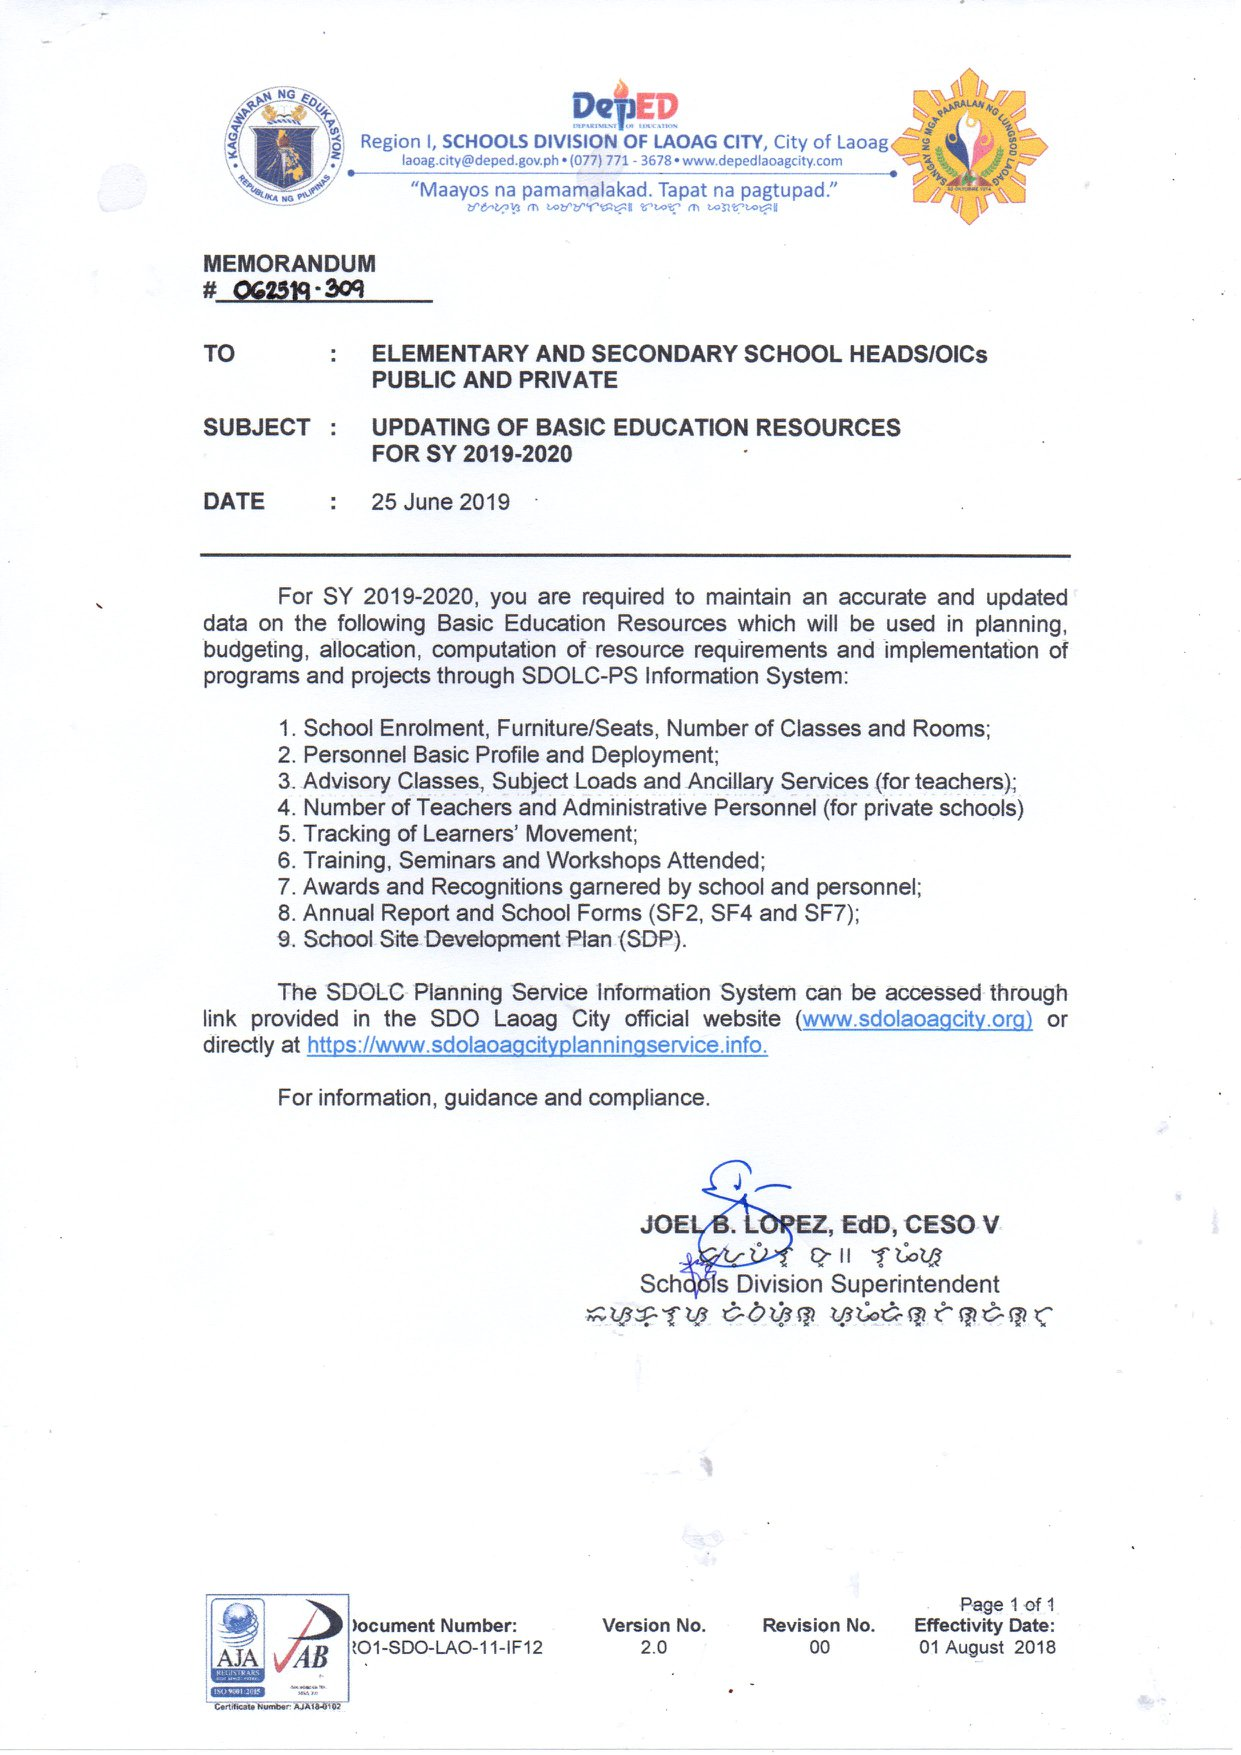 Basic Education Resources MEMO